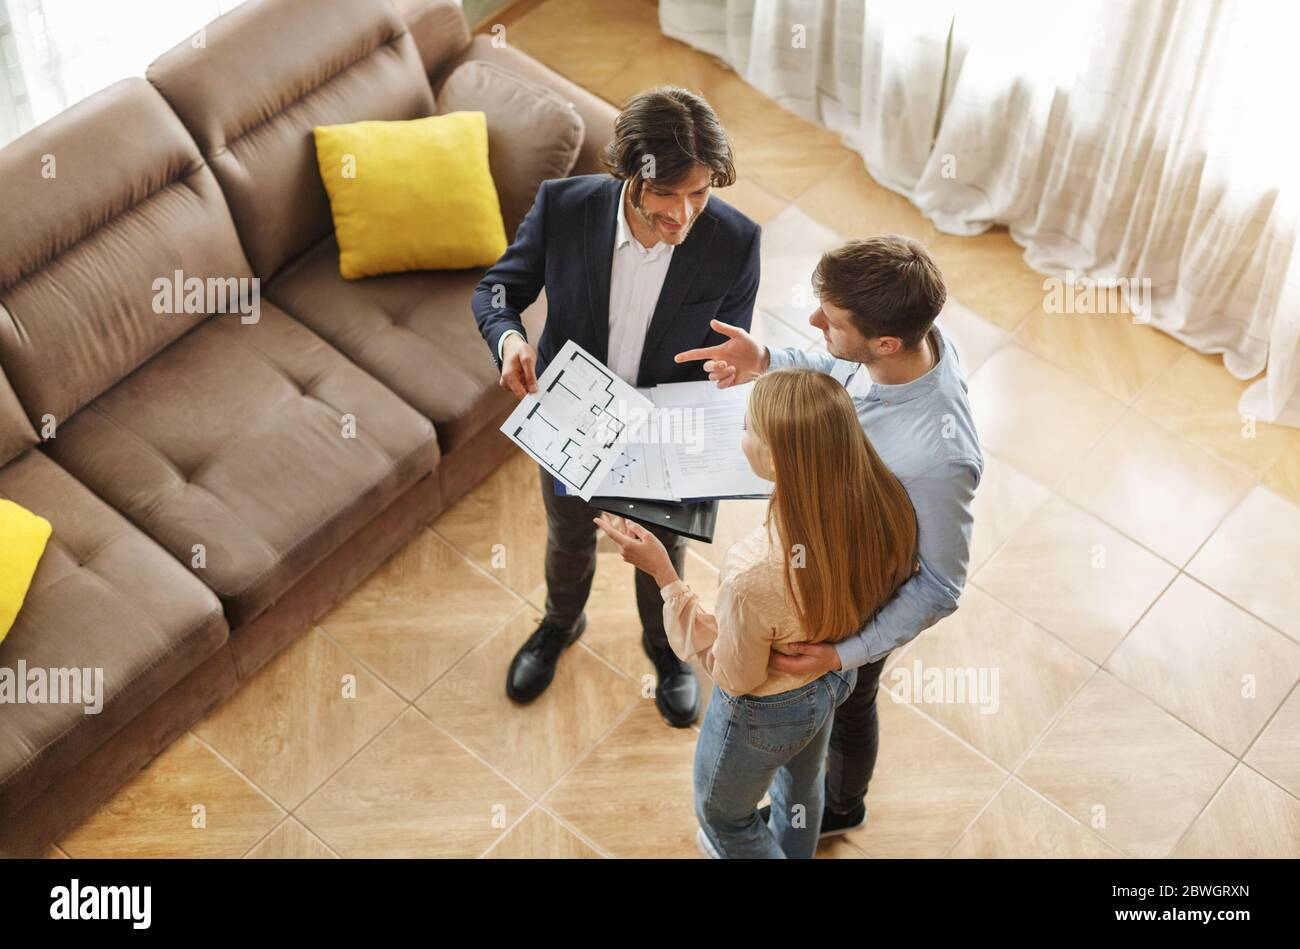 Above view of real estate agent communicating with customers about house purchase or rent indoor Stock Photo